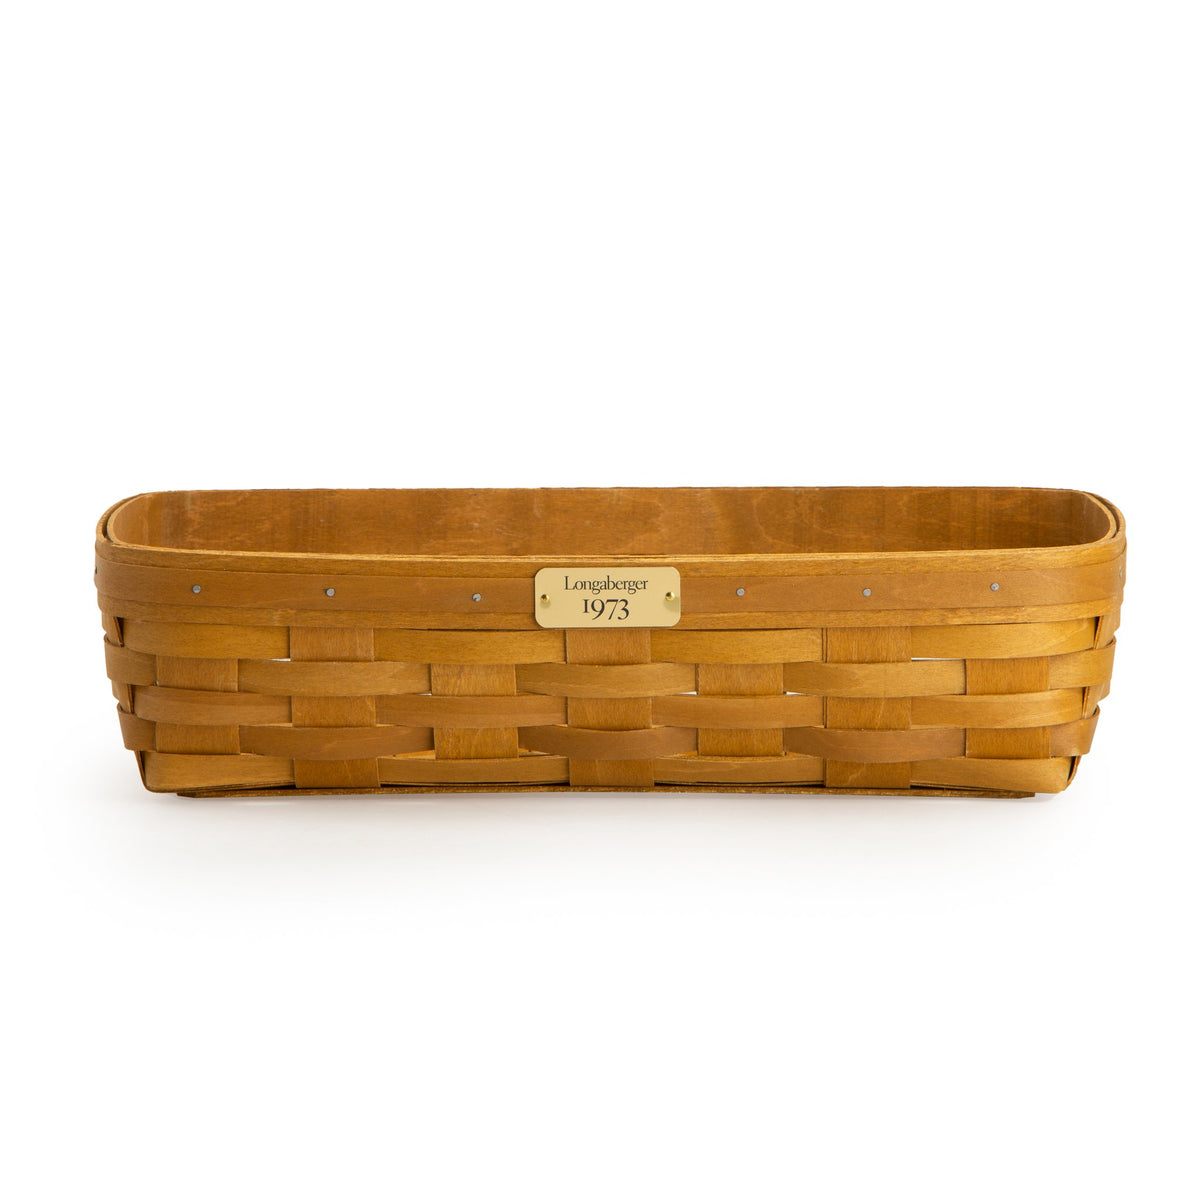 1973 Bread Basket